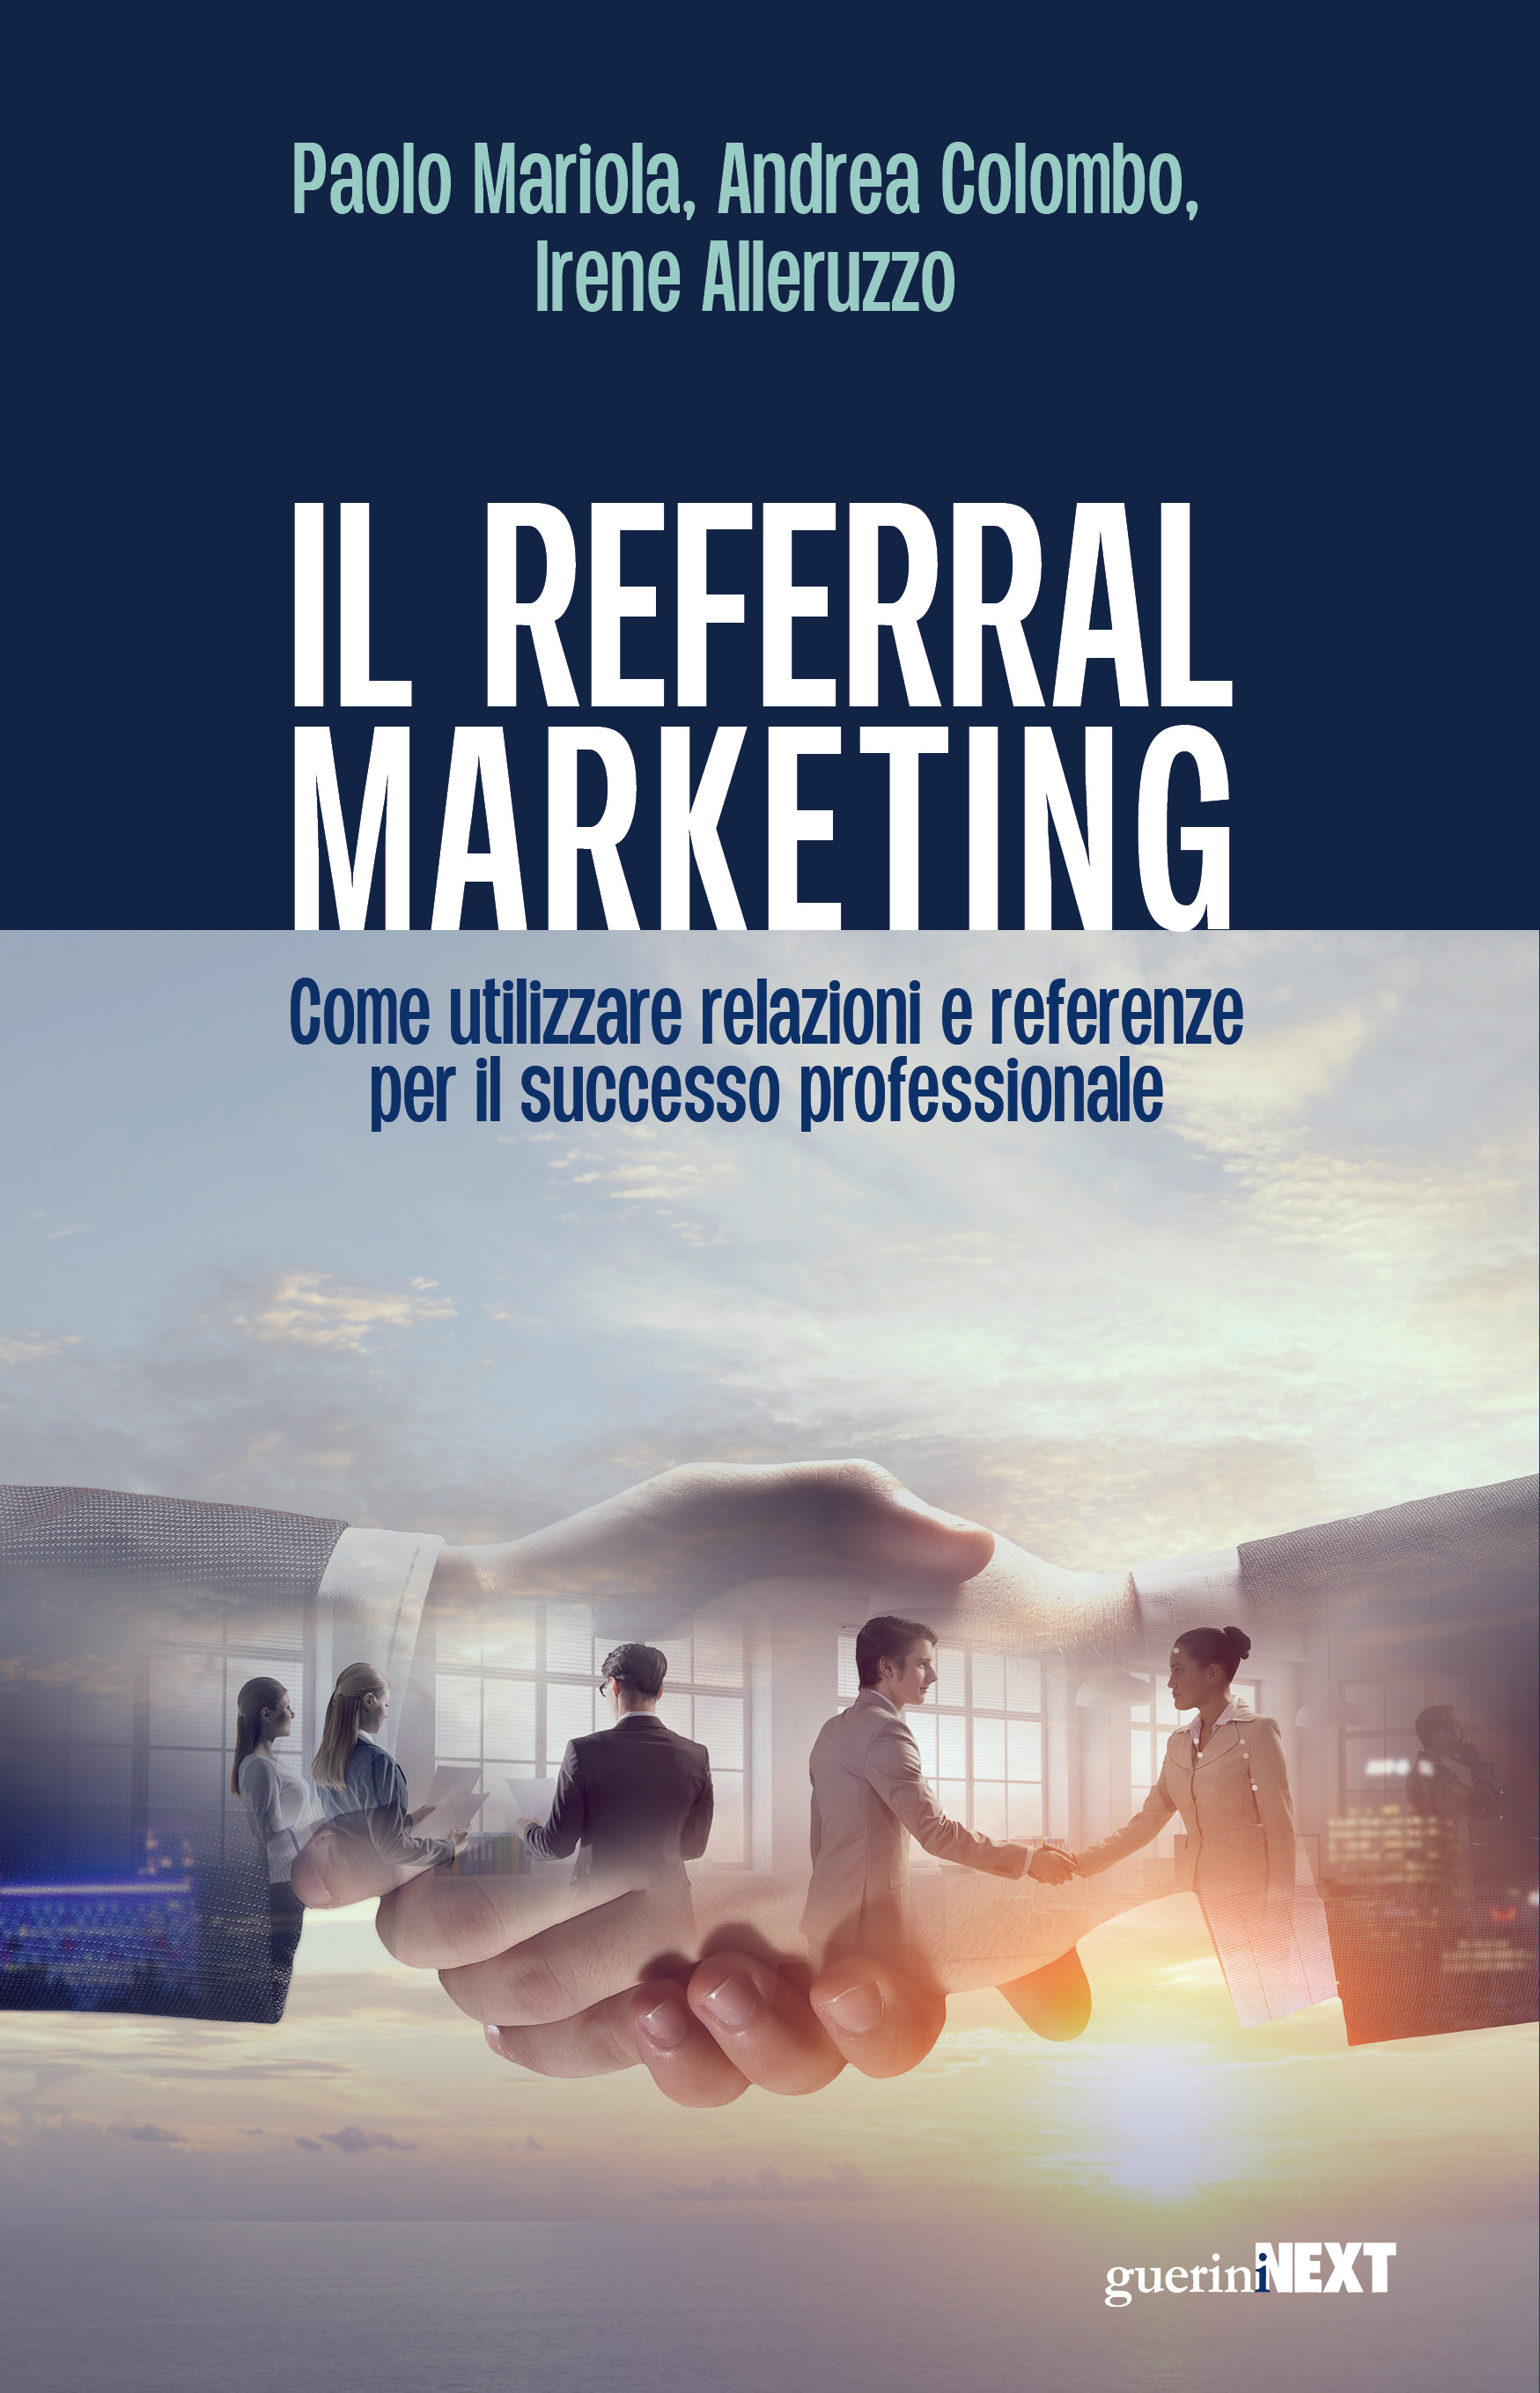 Referral Marketing: dal passaparola al marketing delle relazioni